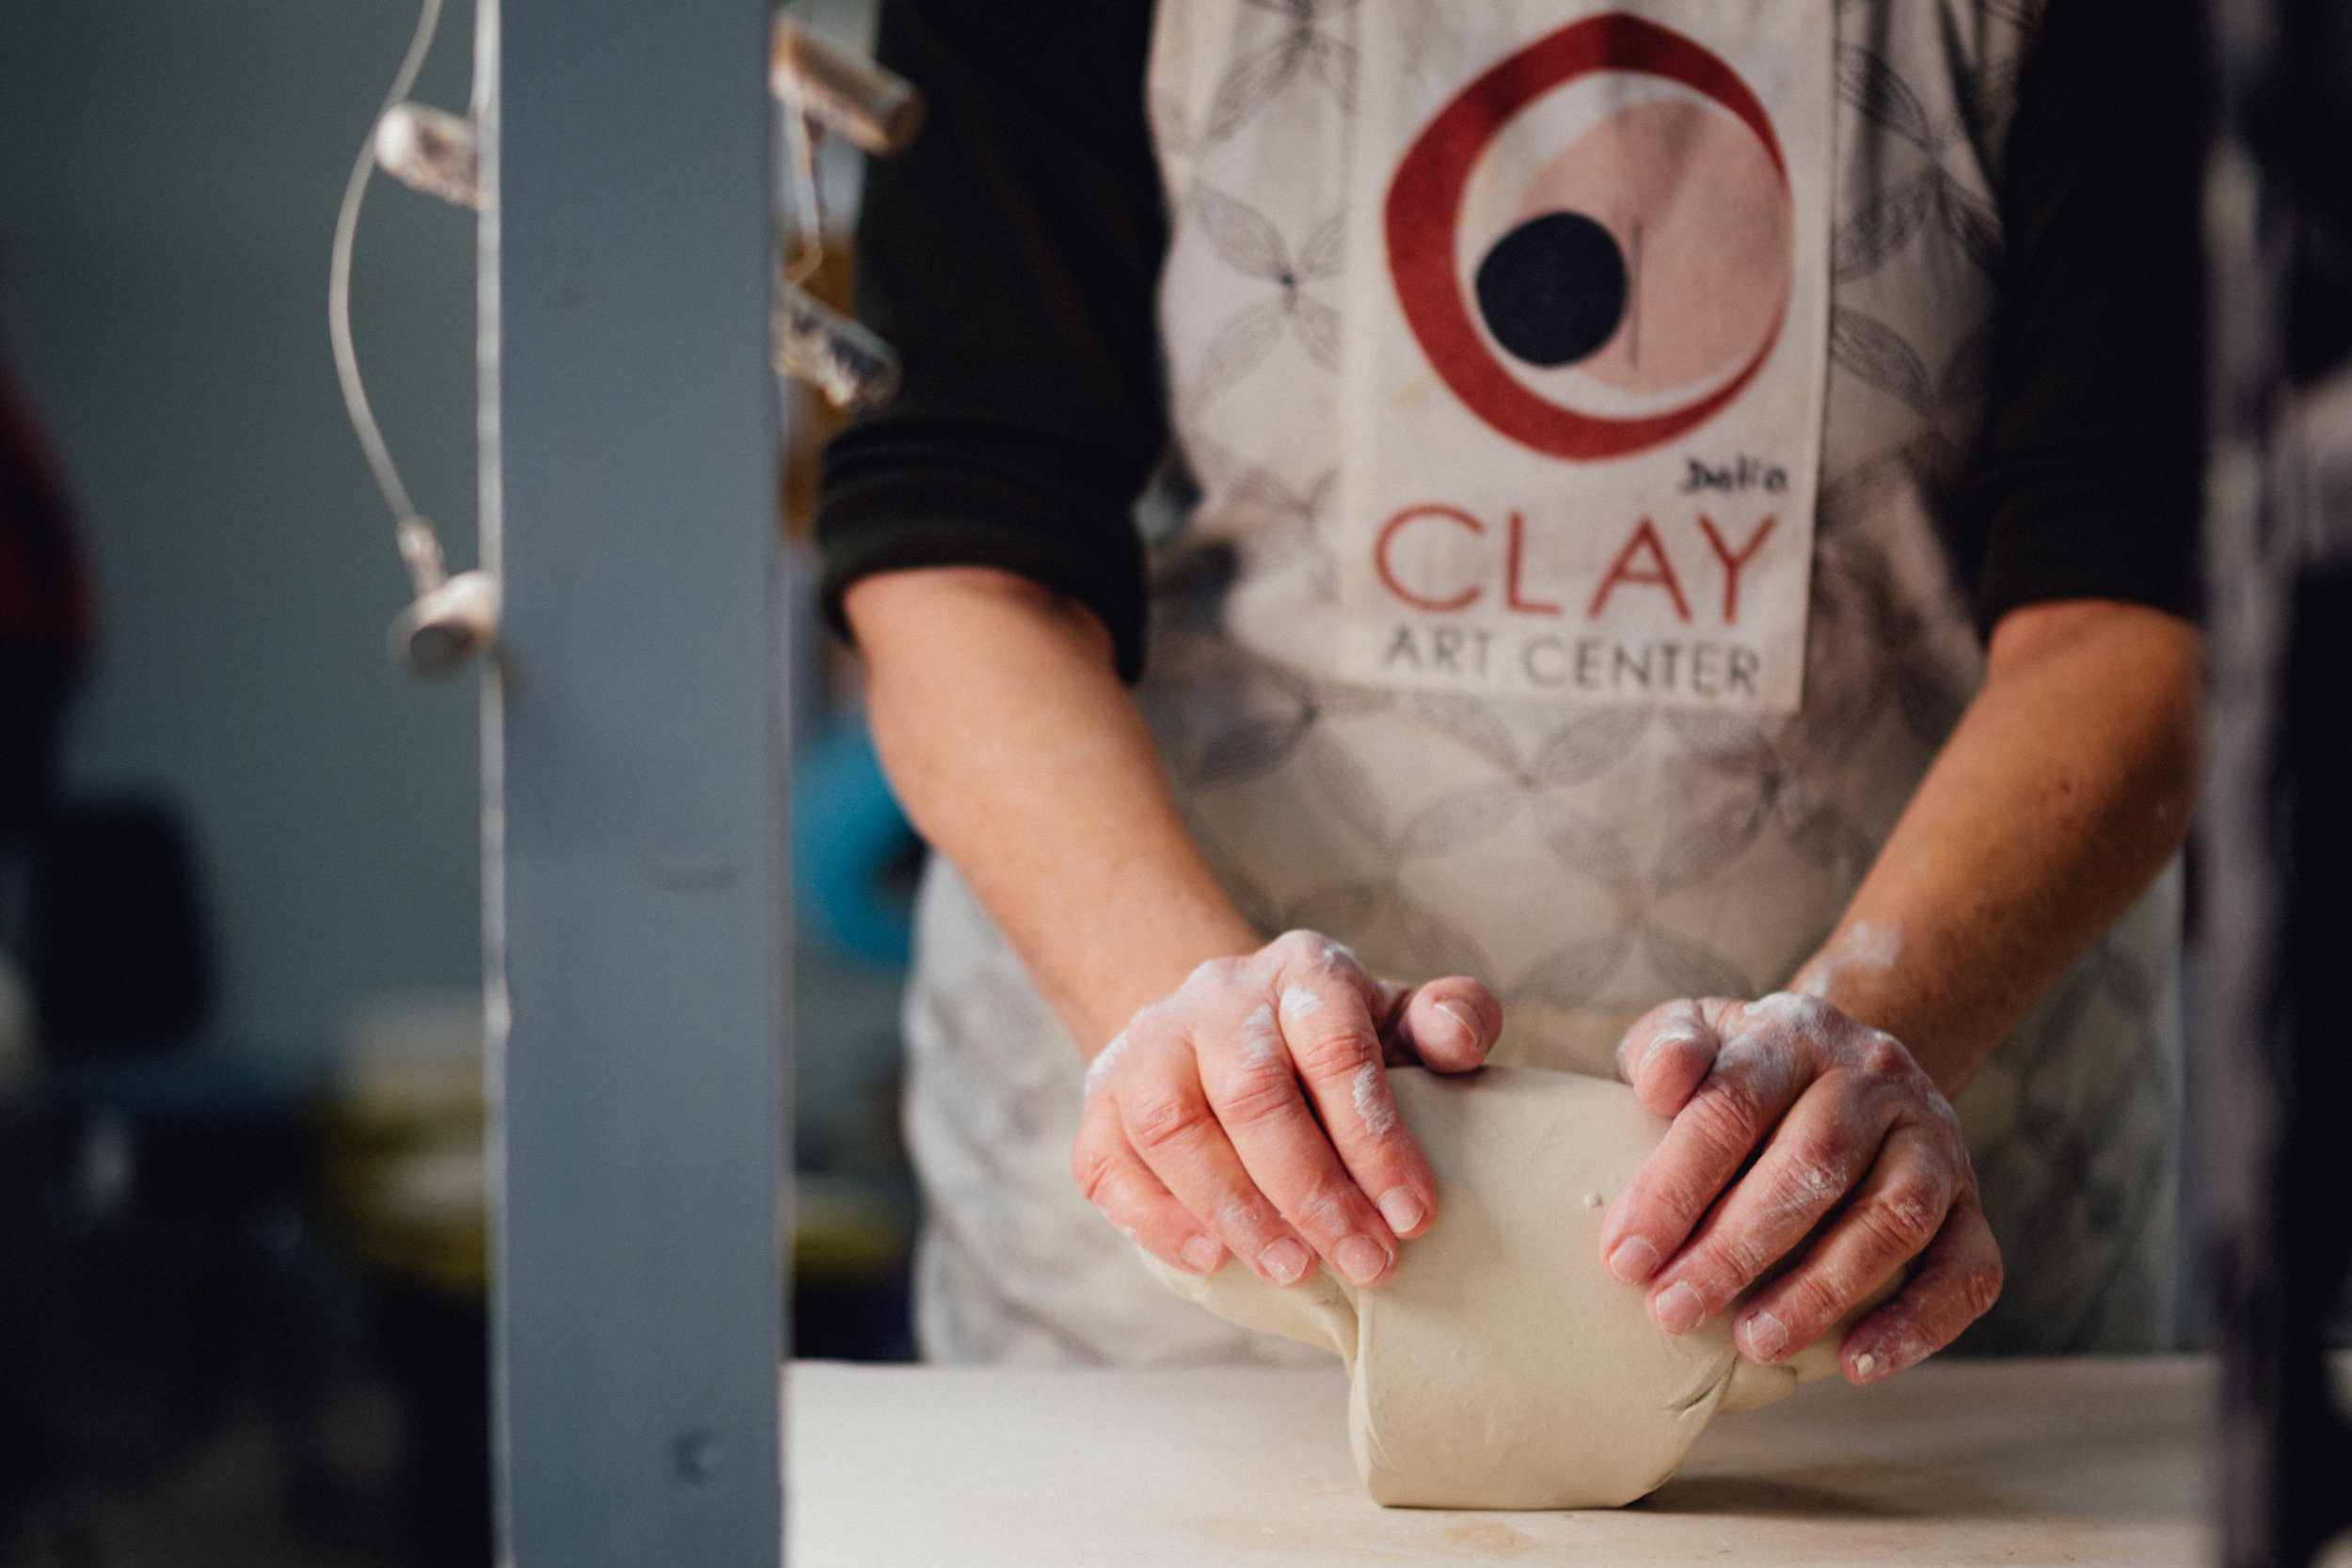 clayartcenter_chrissetter_115.jpg